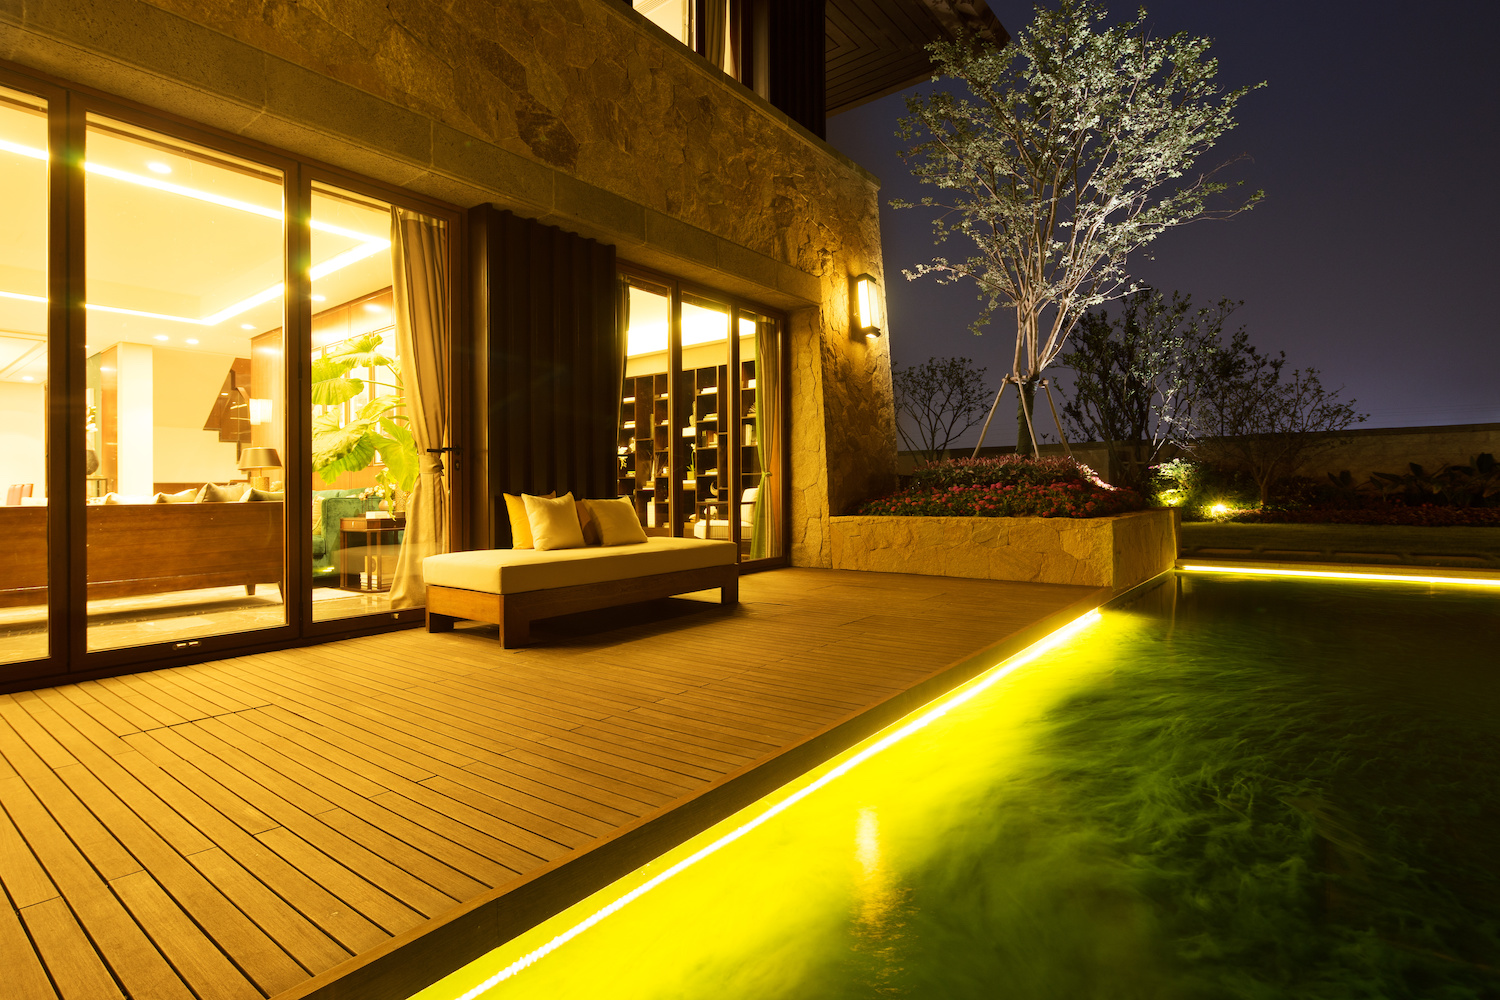 5 unique residential landscape lighting design ideas - How to design outdoor lighting plan ...